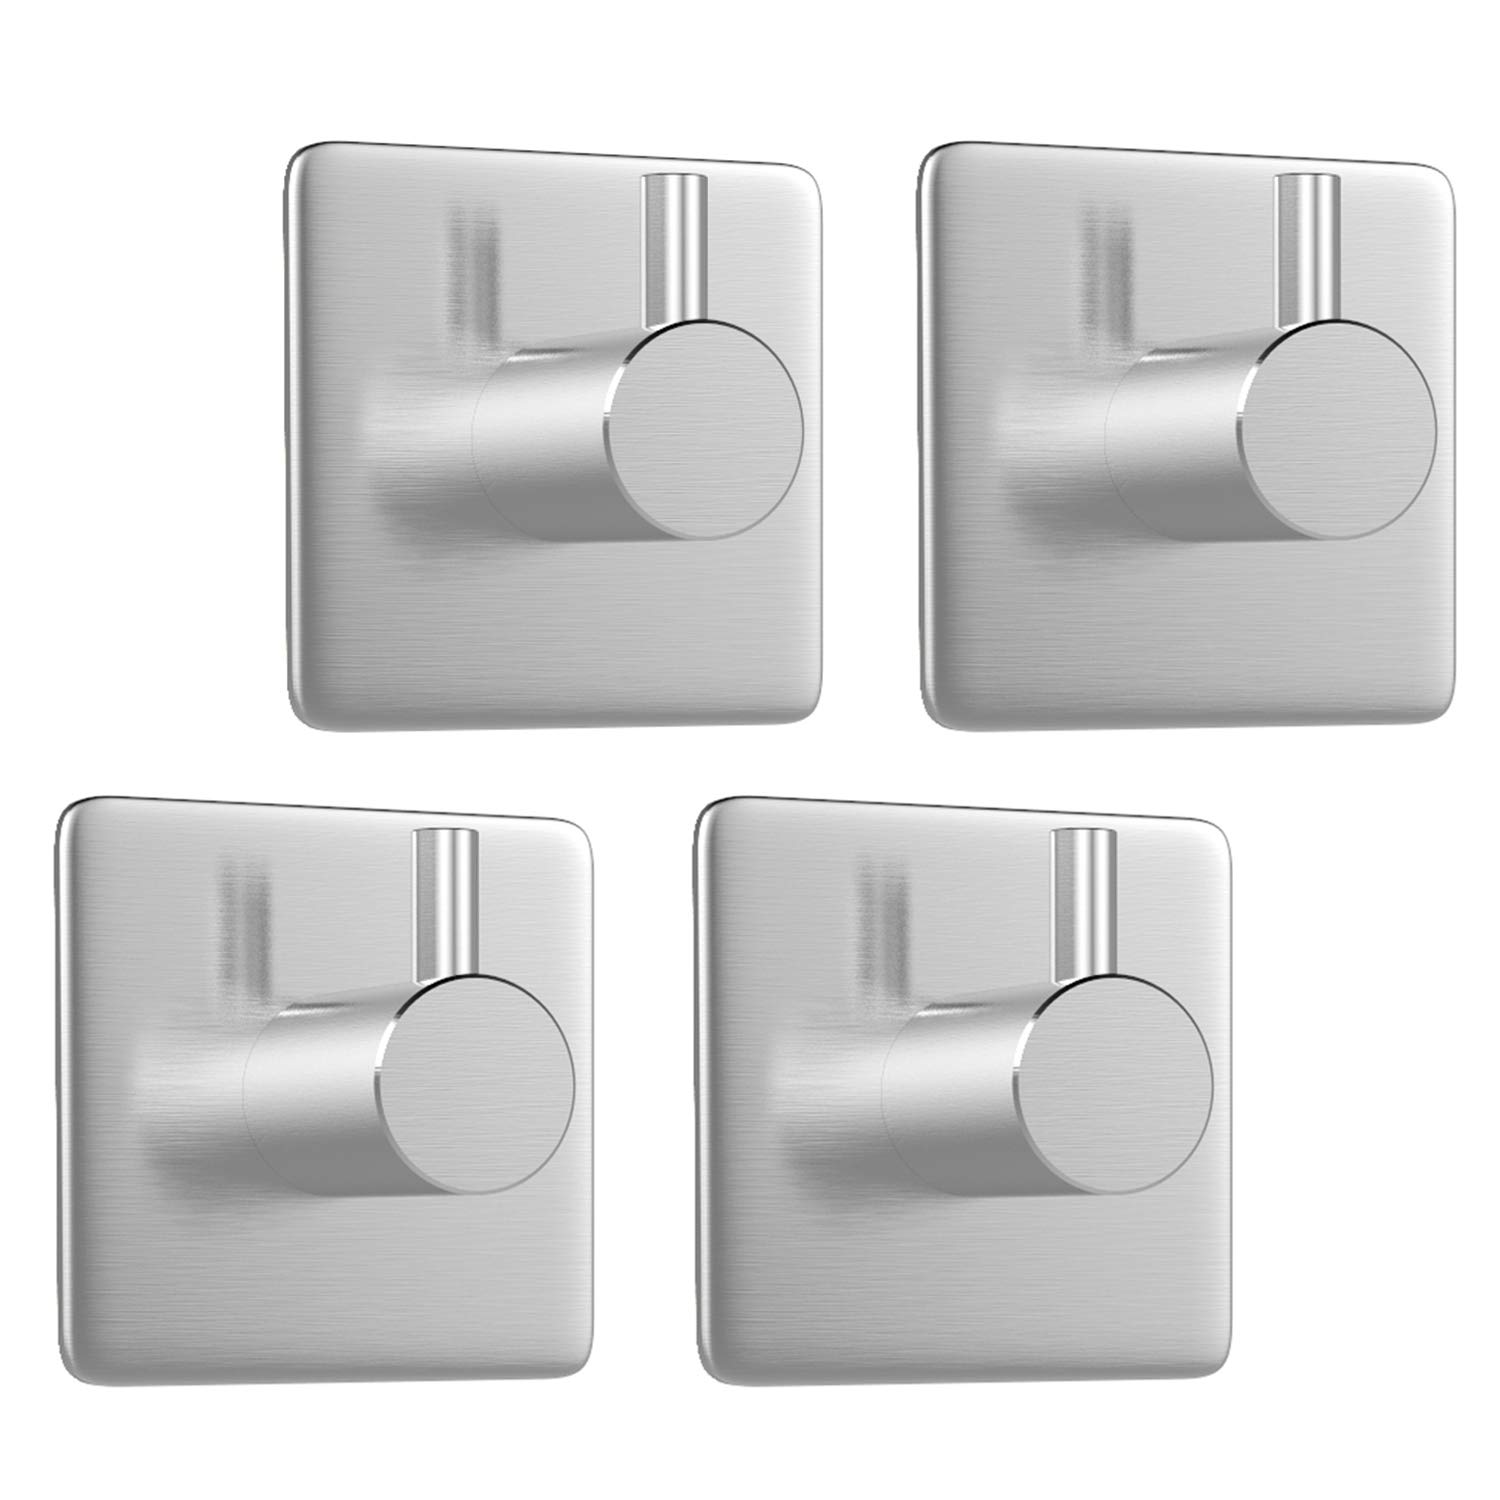 Luxspire 4PACK 3M Self Adhesive Hook Kitchen Bathroom Wall Door Heavy Duty 304 Stainless Steel Stick Holder Hanger Brushed Finish